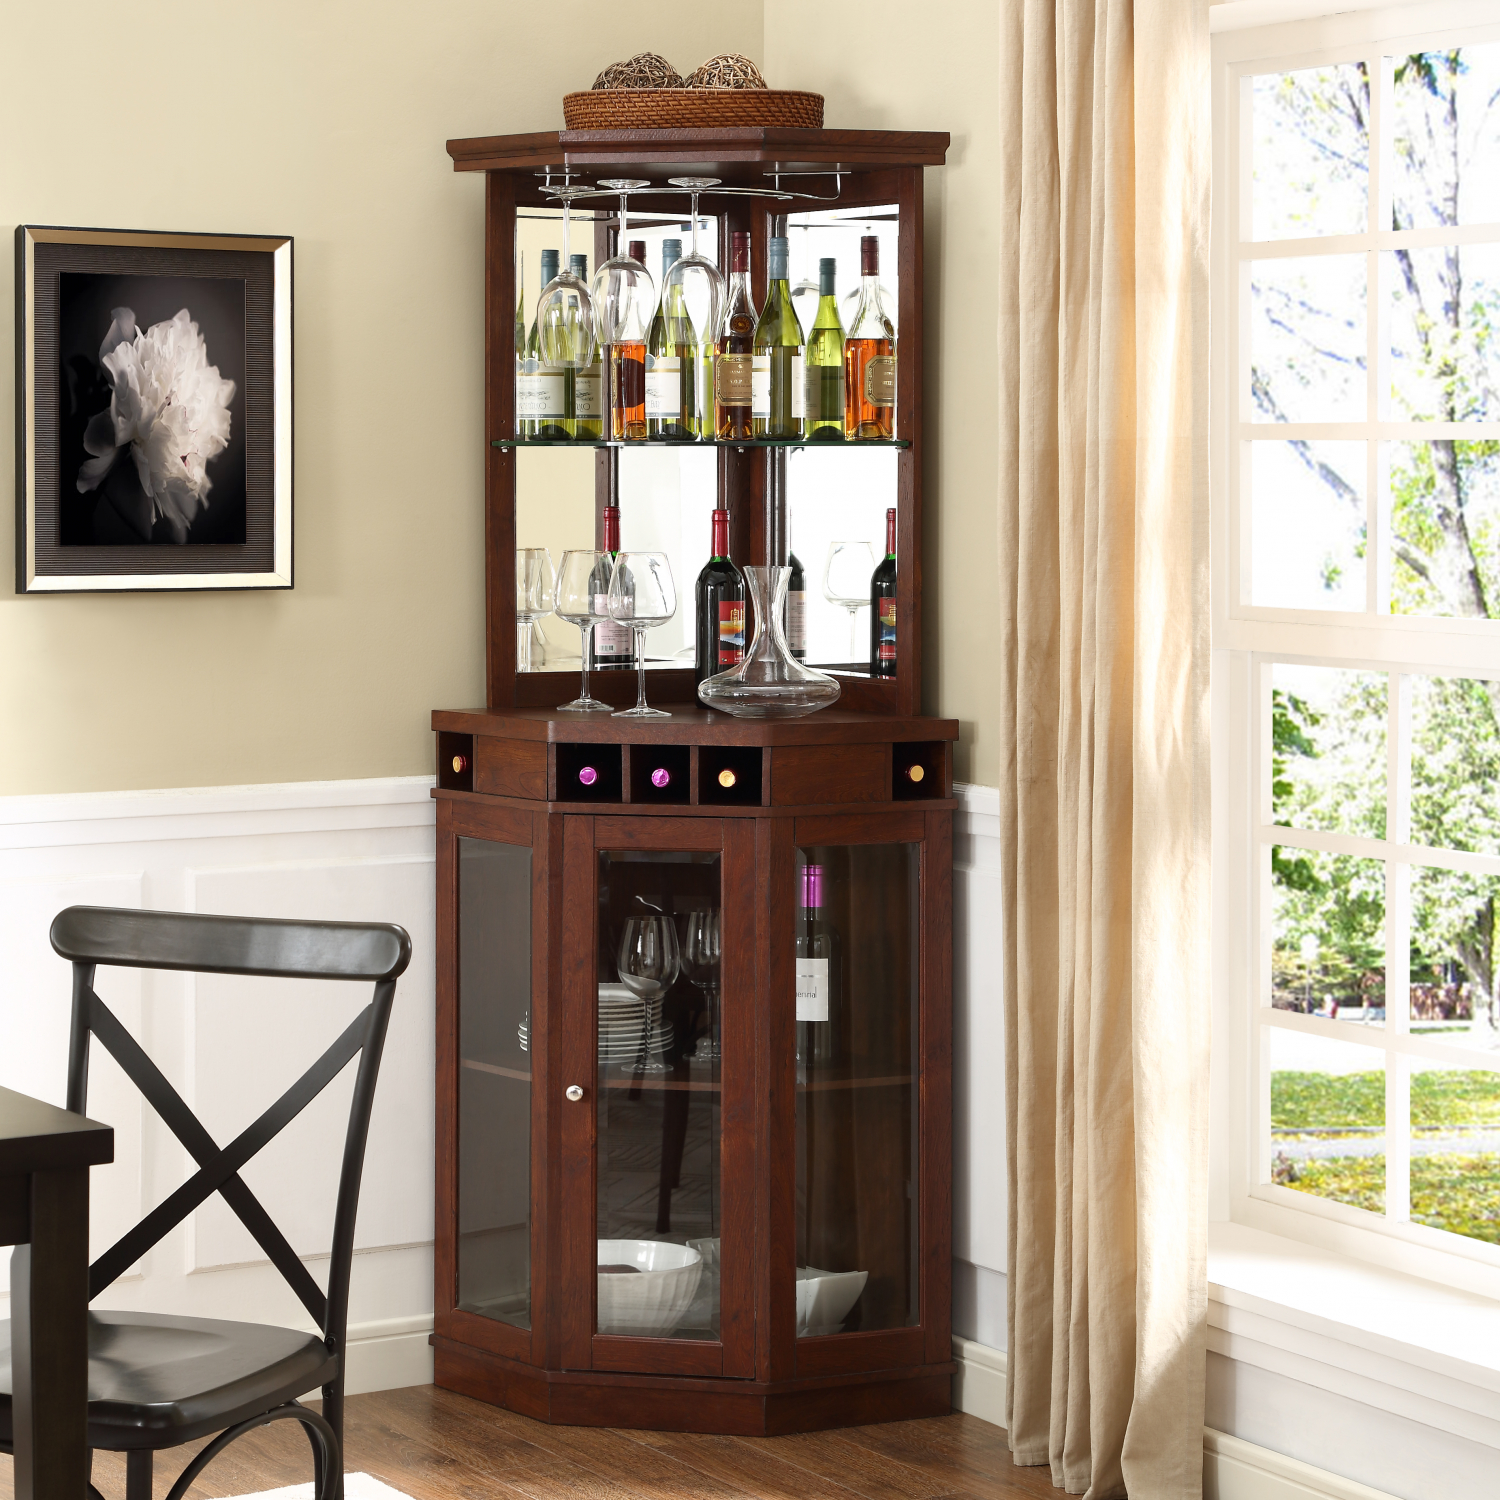 Details About Mini Bars Liquor Cabinet Whiskey Cabinets Wine Storage Wooden Home Bar Furniture